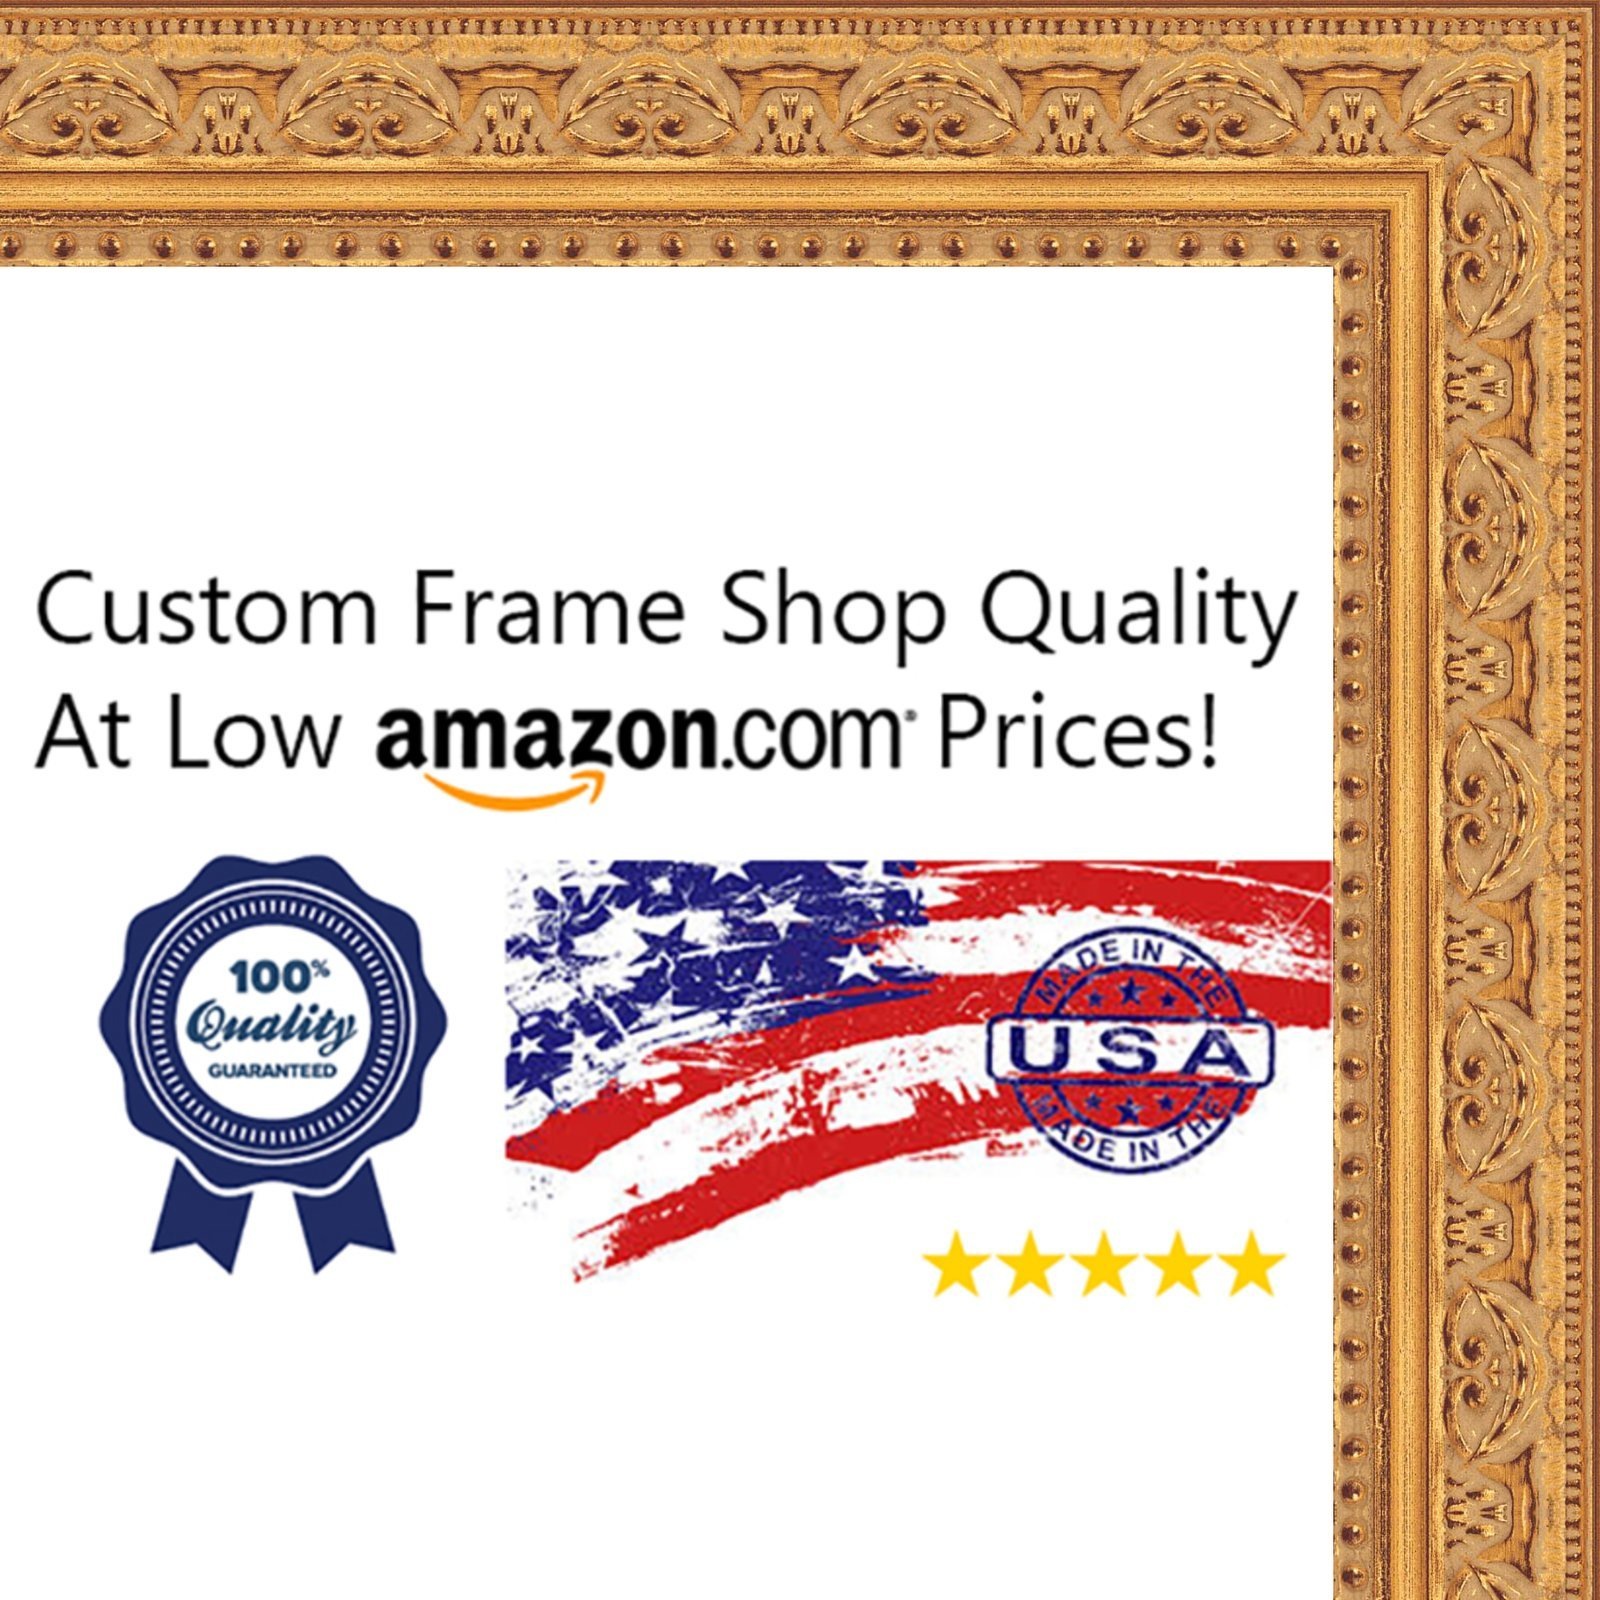 24x24 Ornate Gold Wood Picture Square Frame - UV Acrylic, Foam Board Backing, & Hanging Hardware Included!